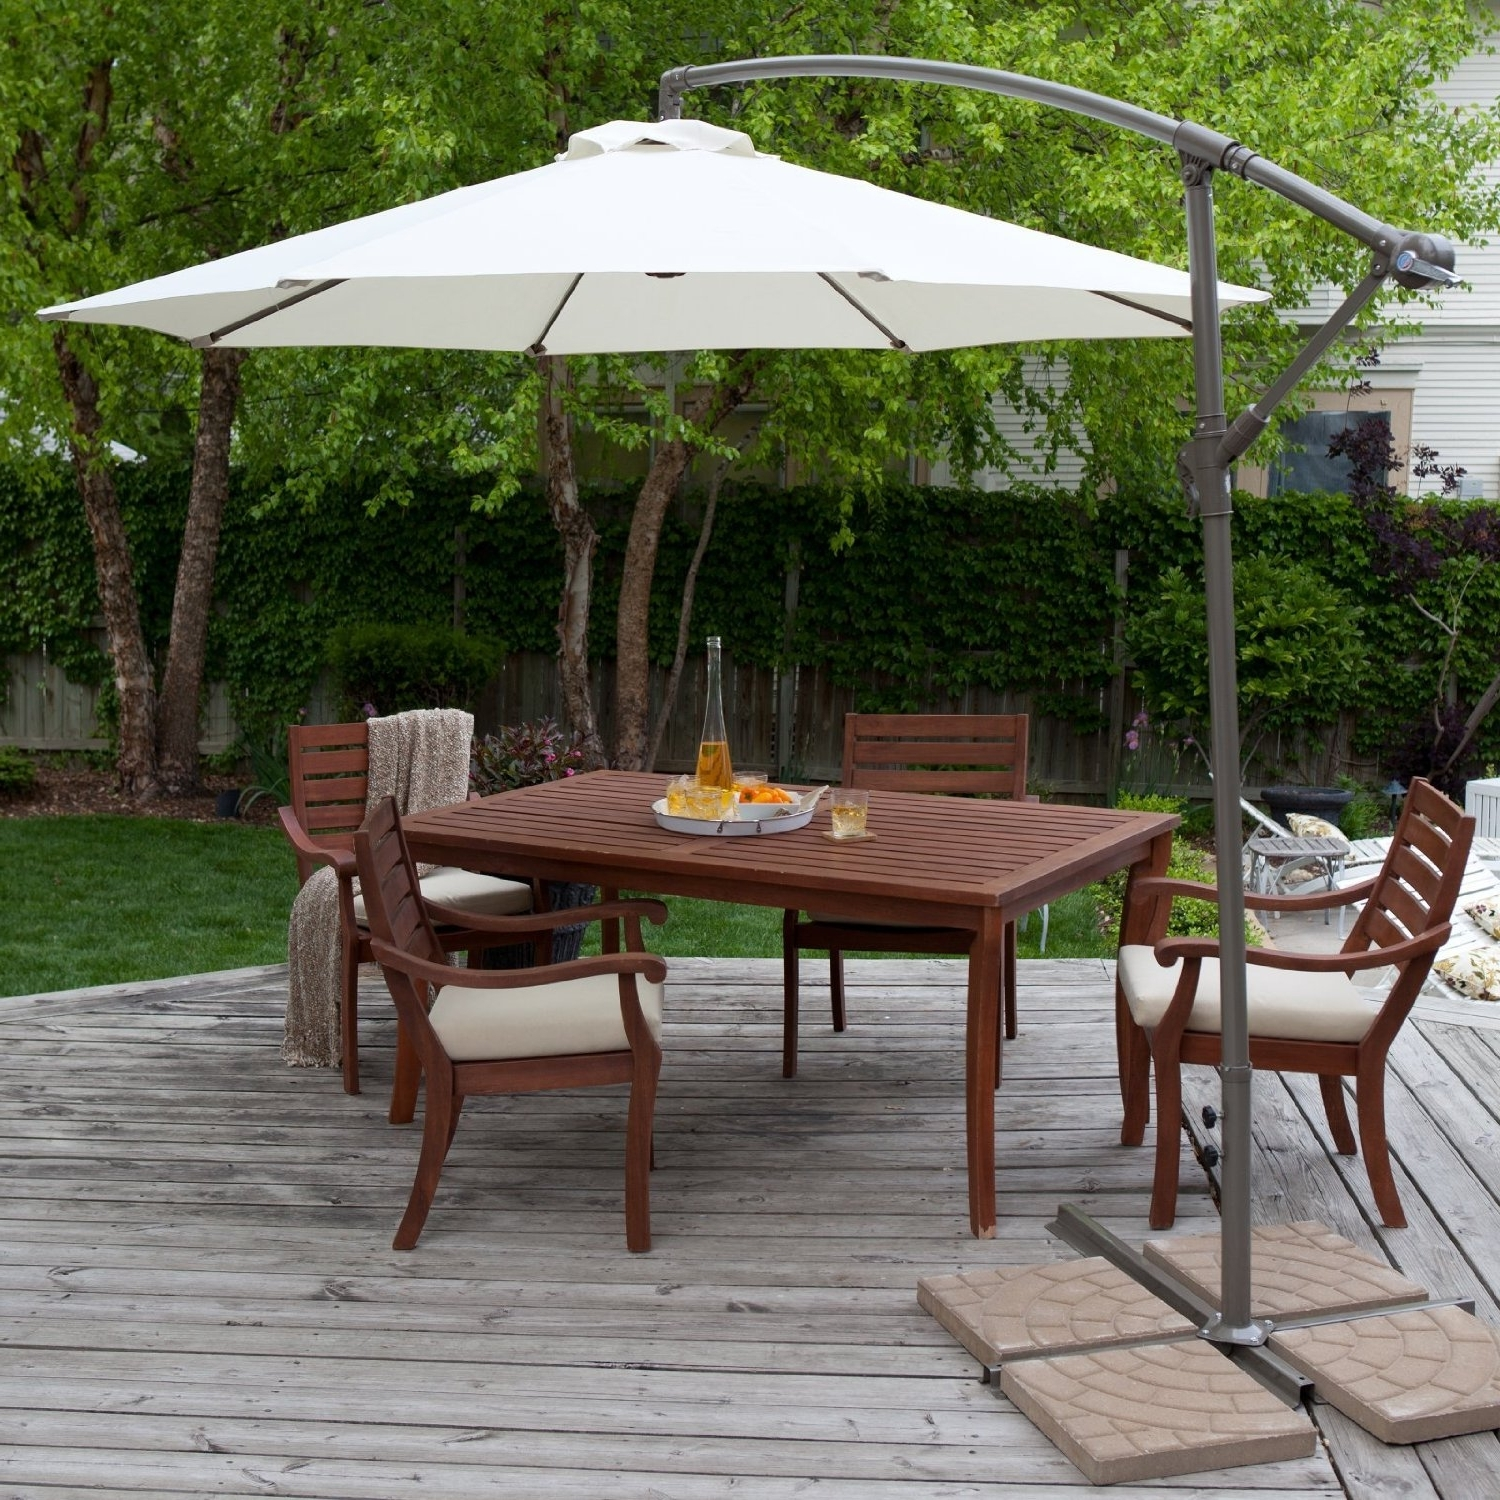 Interior : Patio Table Chairs Umbrella Set New Furniture Sets With In Popular Small Patio Tables With Umbrellas (View 7 of 20)